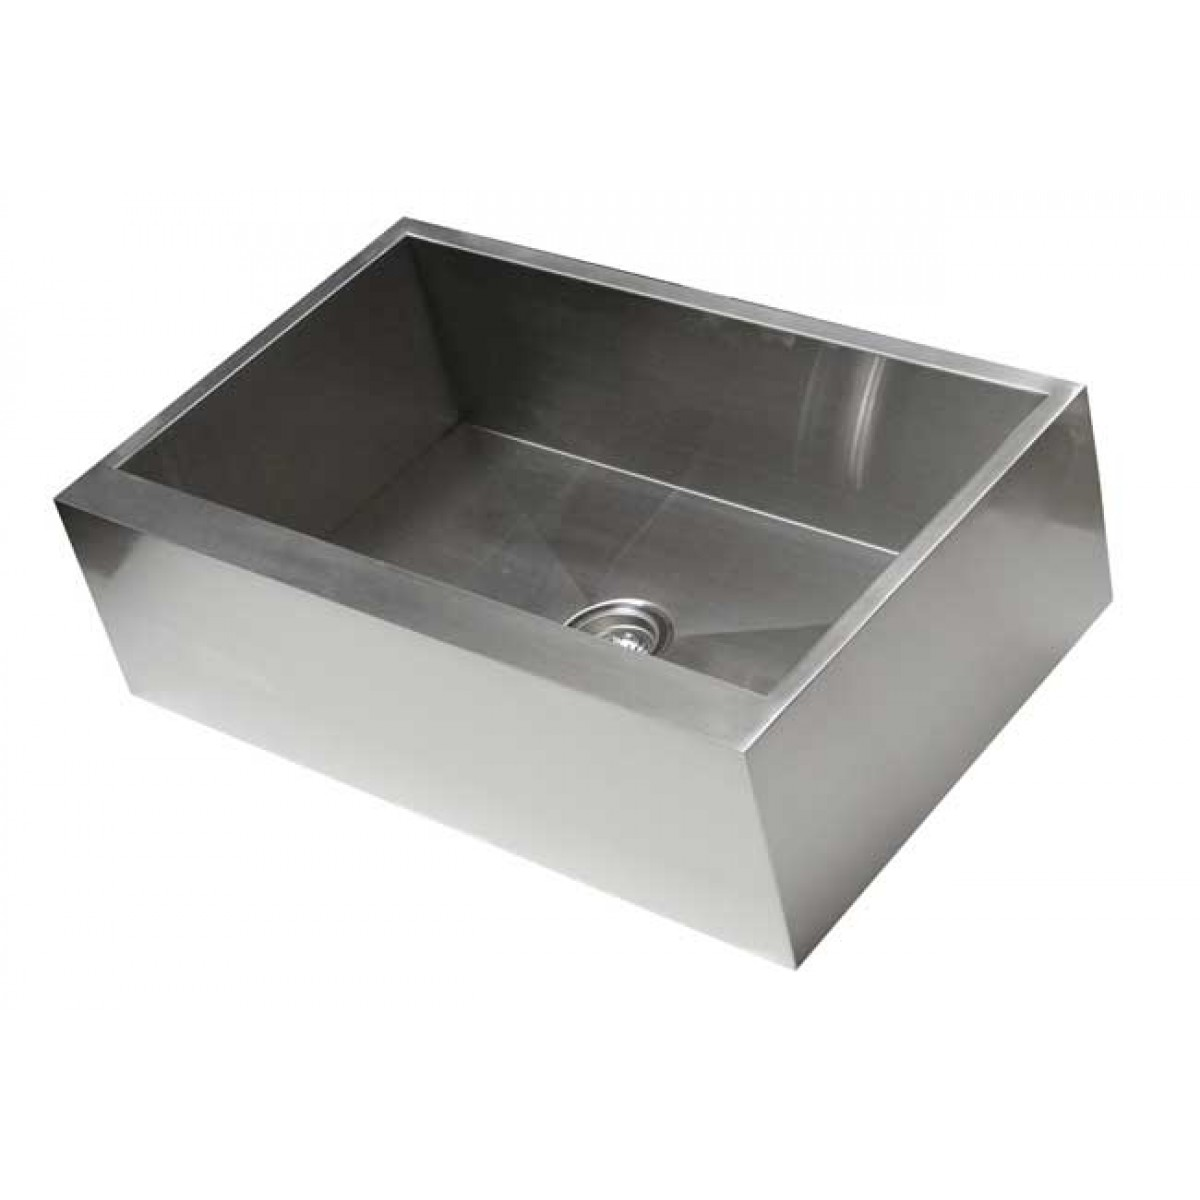 30 inch kitchen sink tall table and chairs stainless steel single bowl flat front farm apron